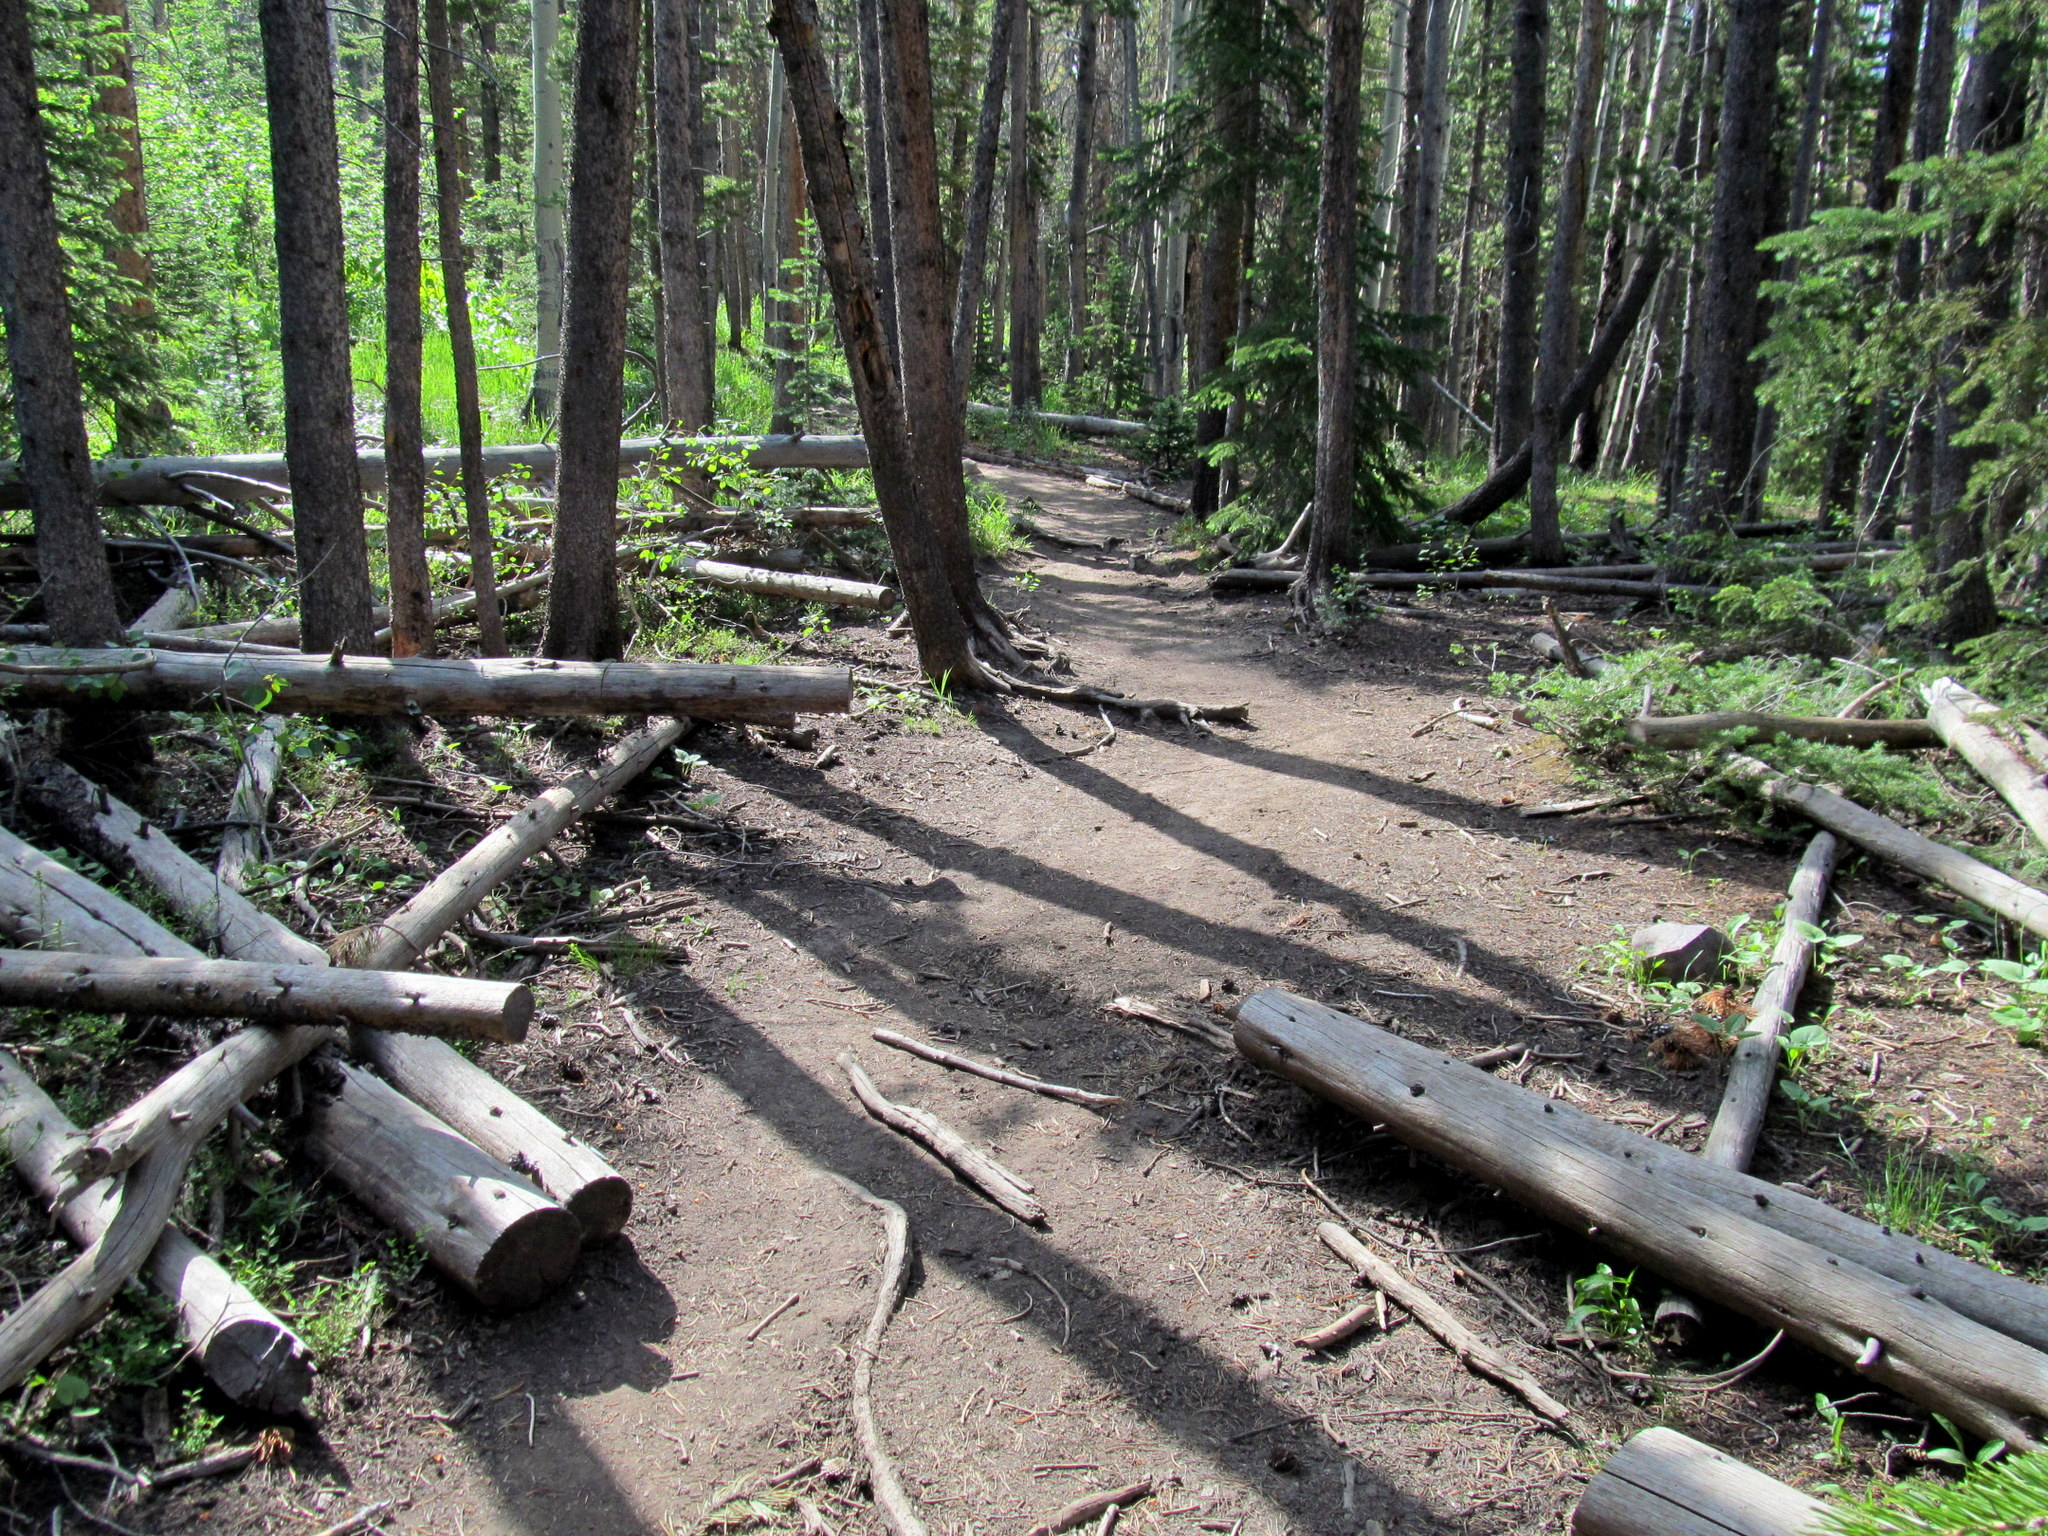 Photo: Many fallen trees that have been cleared